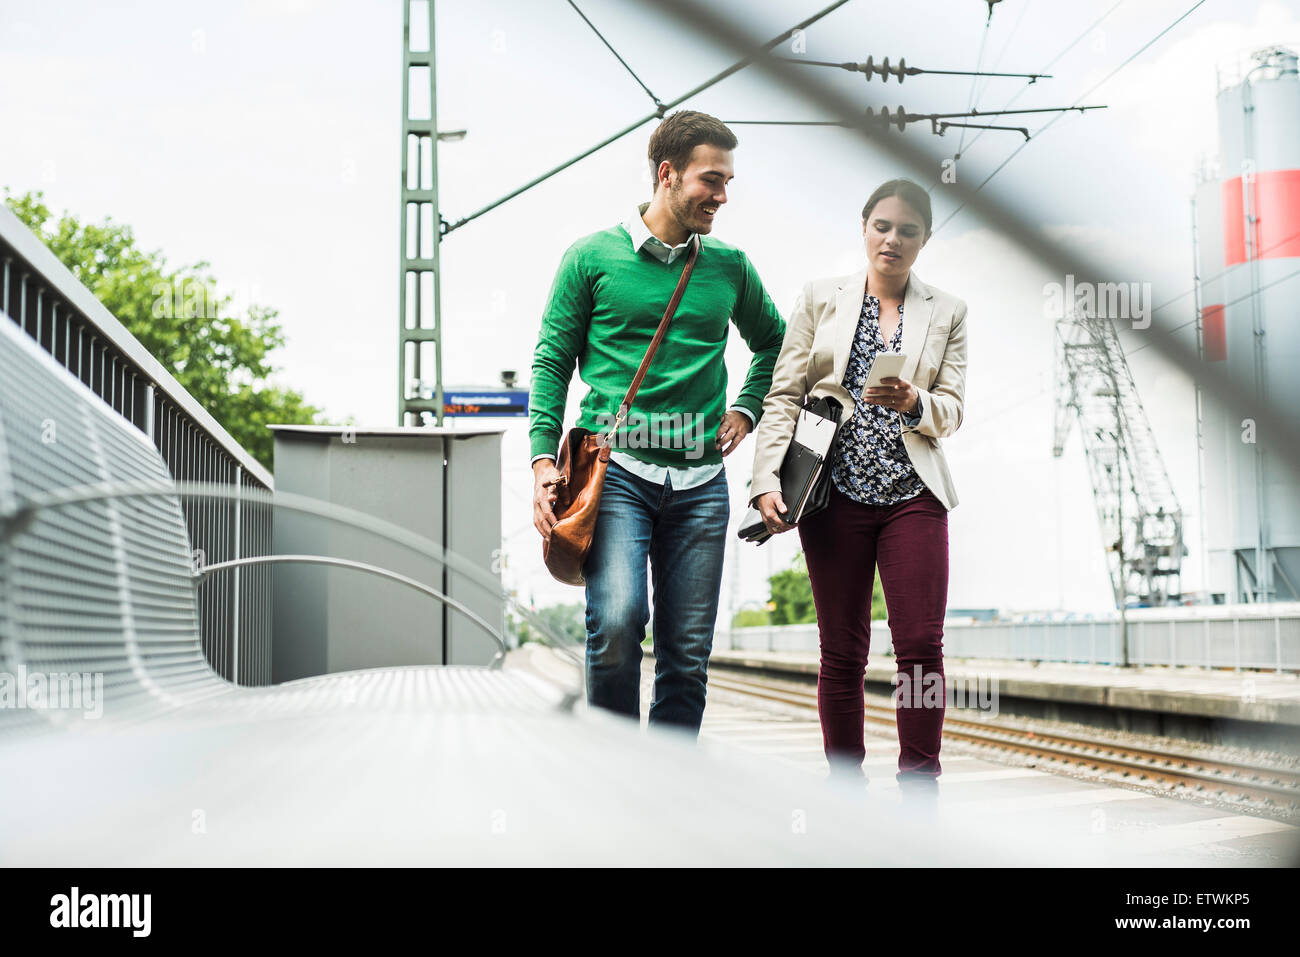 Young man and woman with cell phone on railway platform - Stock Image